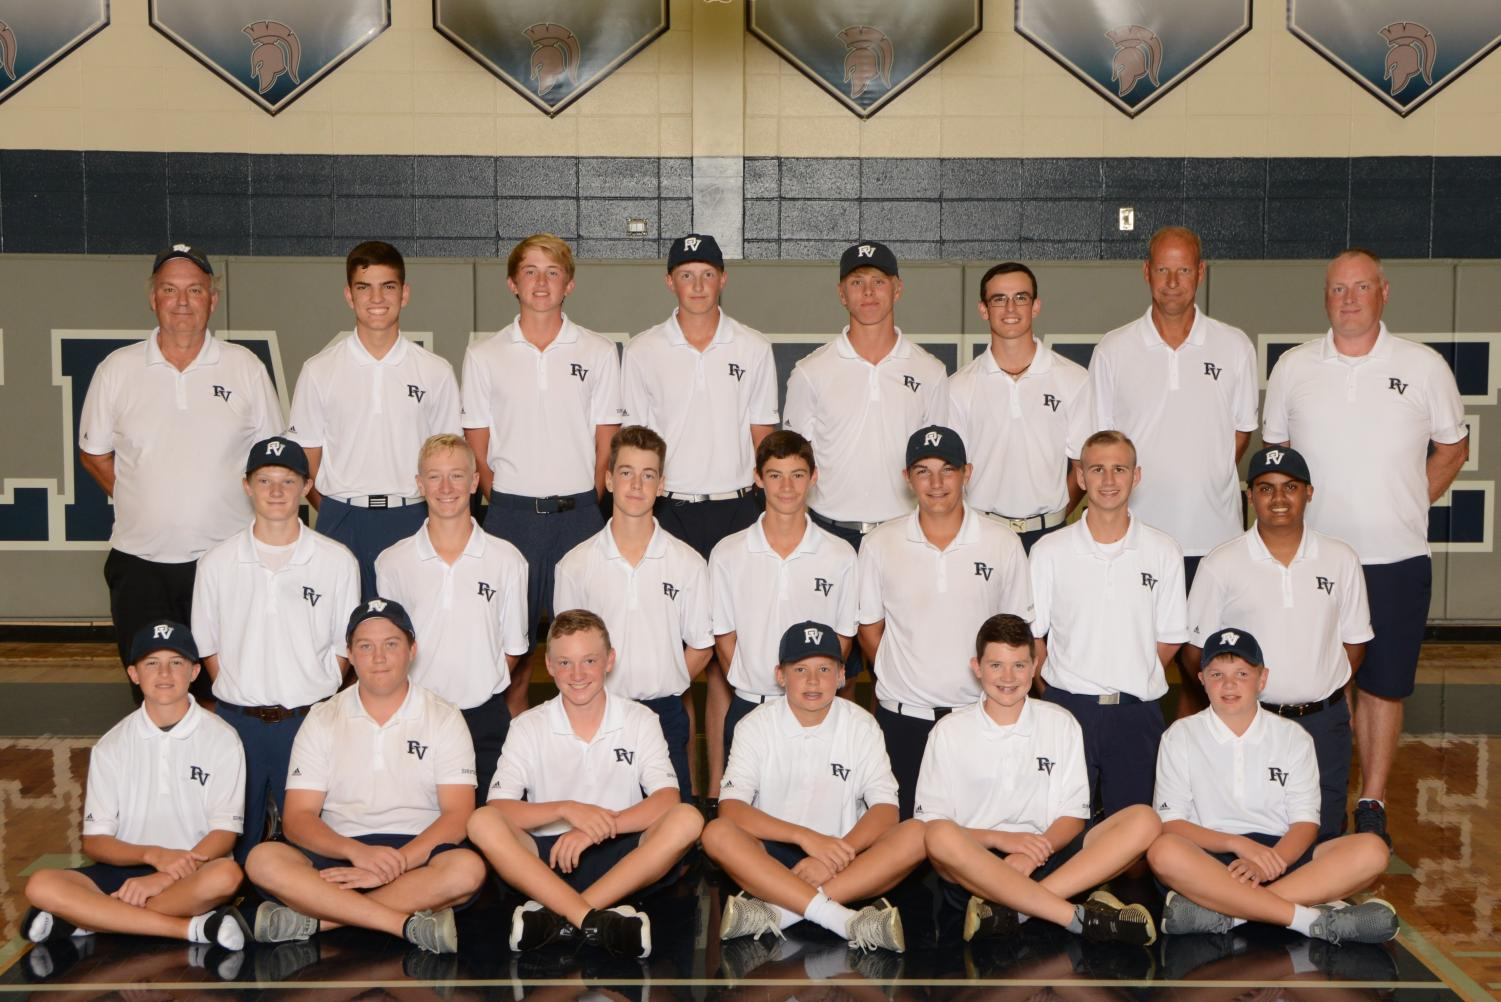 The boys golf team pose for their team picture.